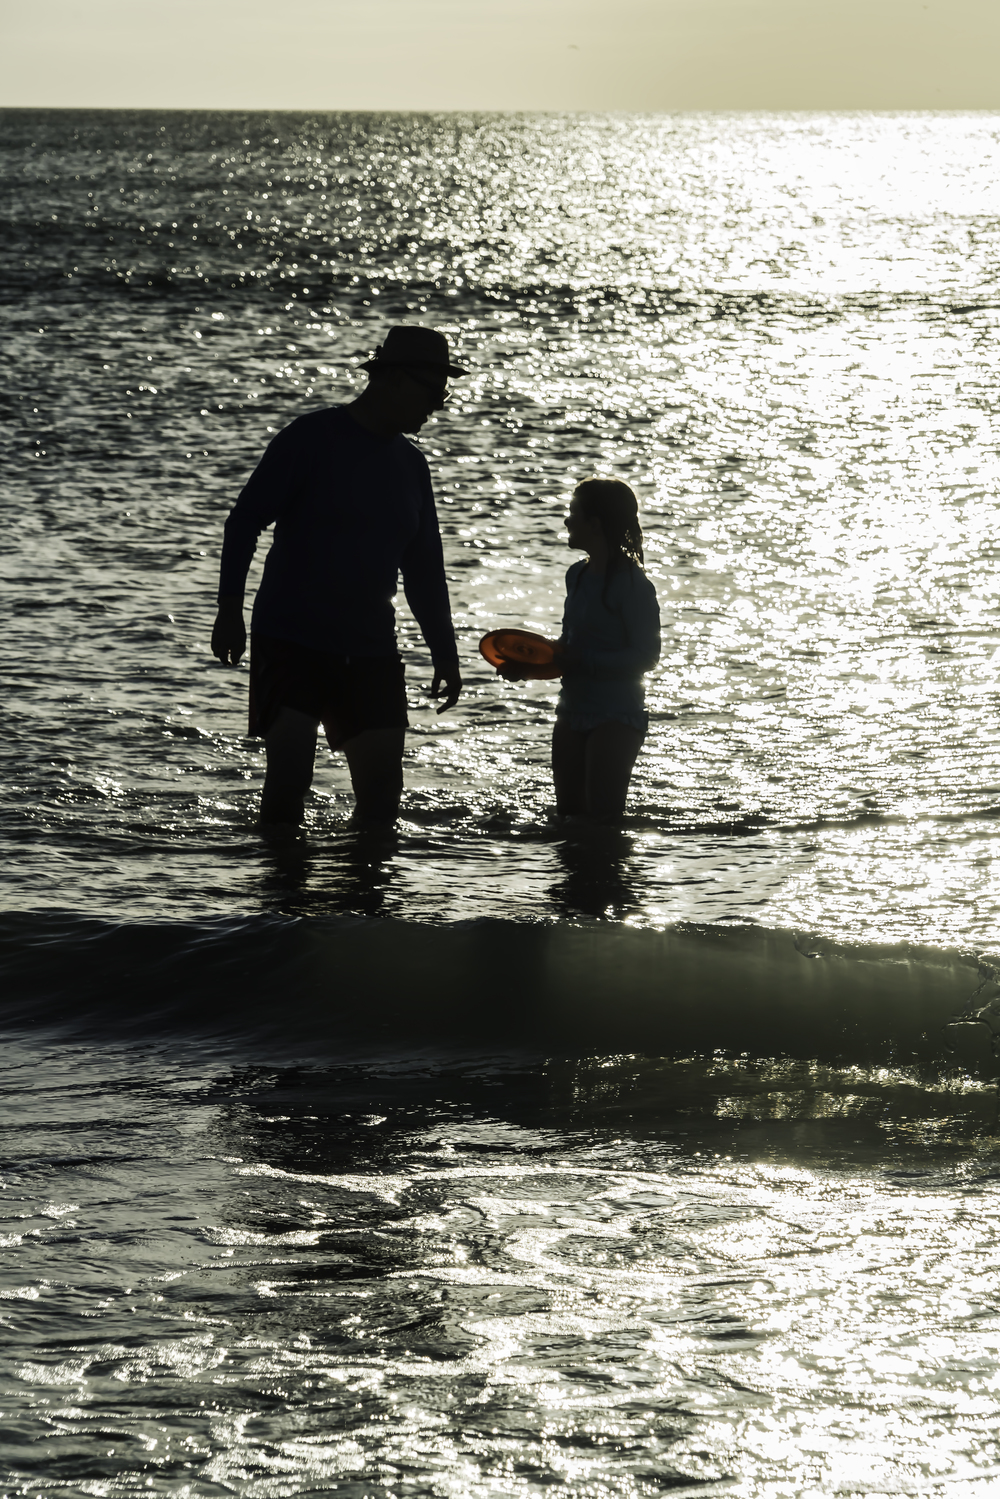 Man and girl in the gulf in Naples FL, late afternoon.  Frisbee included.